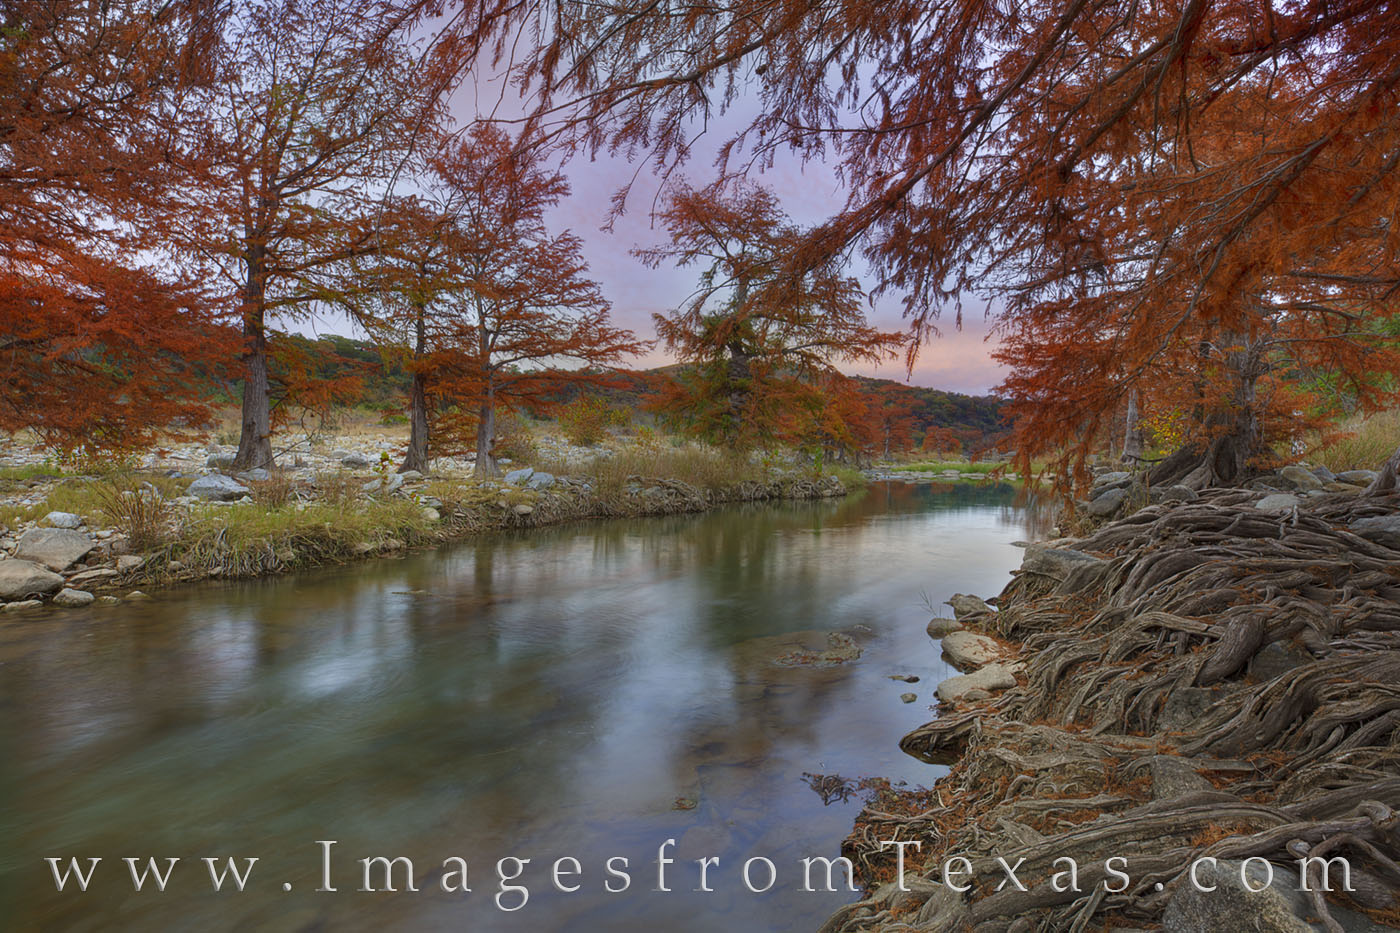 texas hill country, pedernales river, fall colors, autumn colors, cypress, texas fall colors, texas autumn, pedernales falls, texas state parks